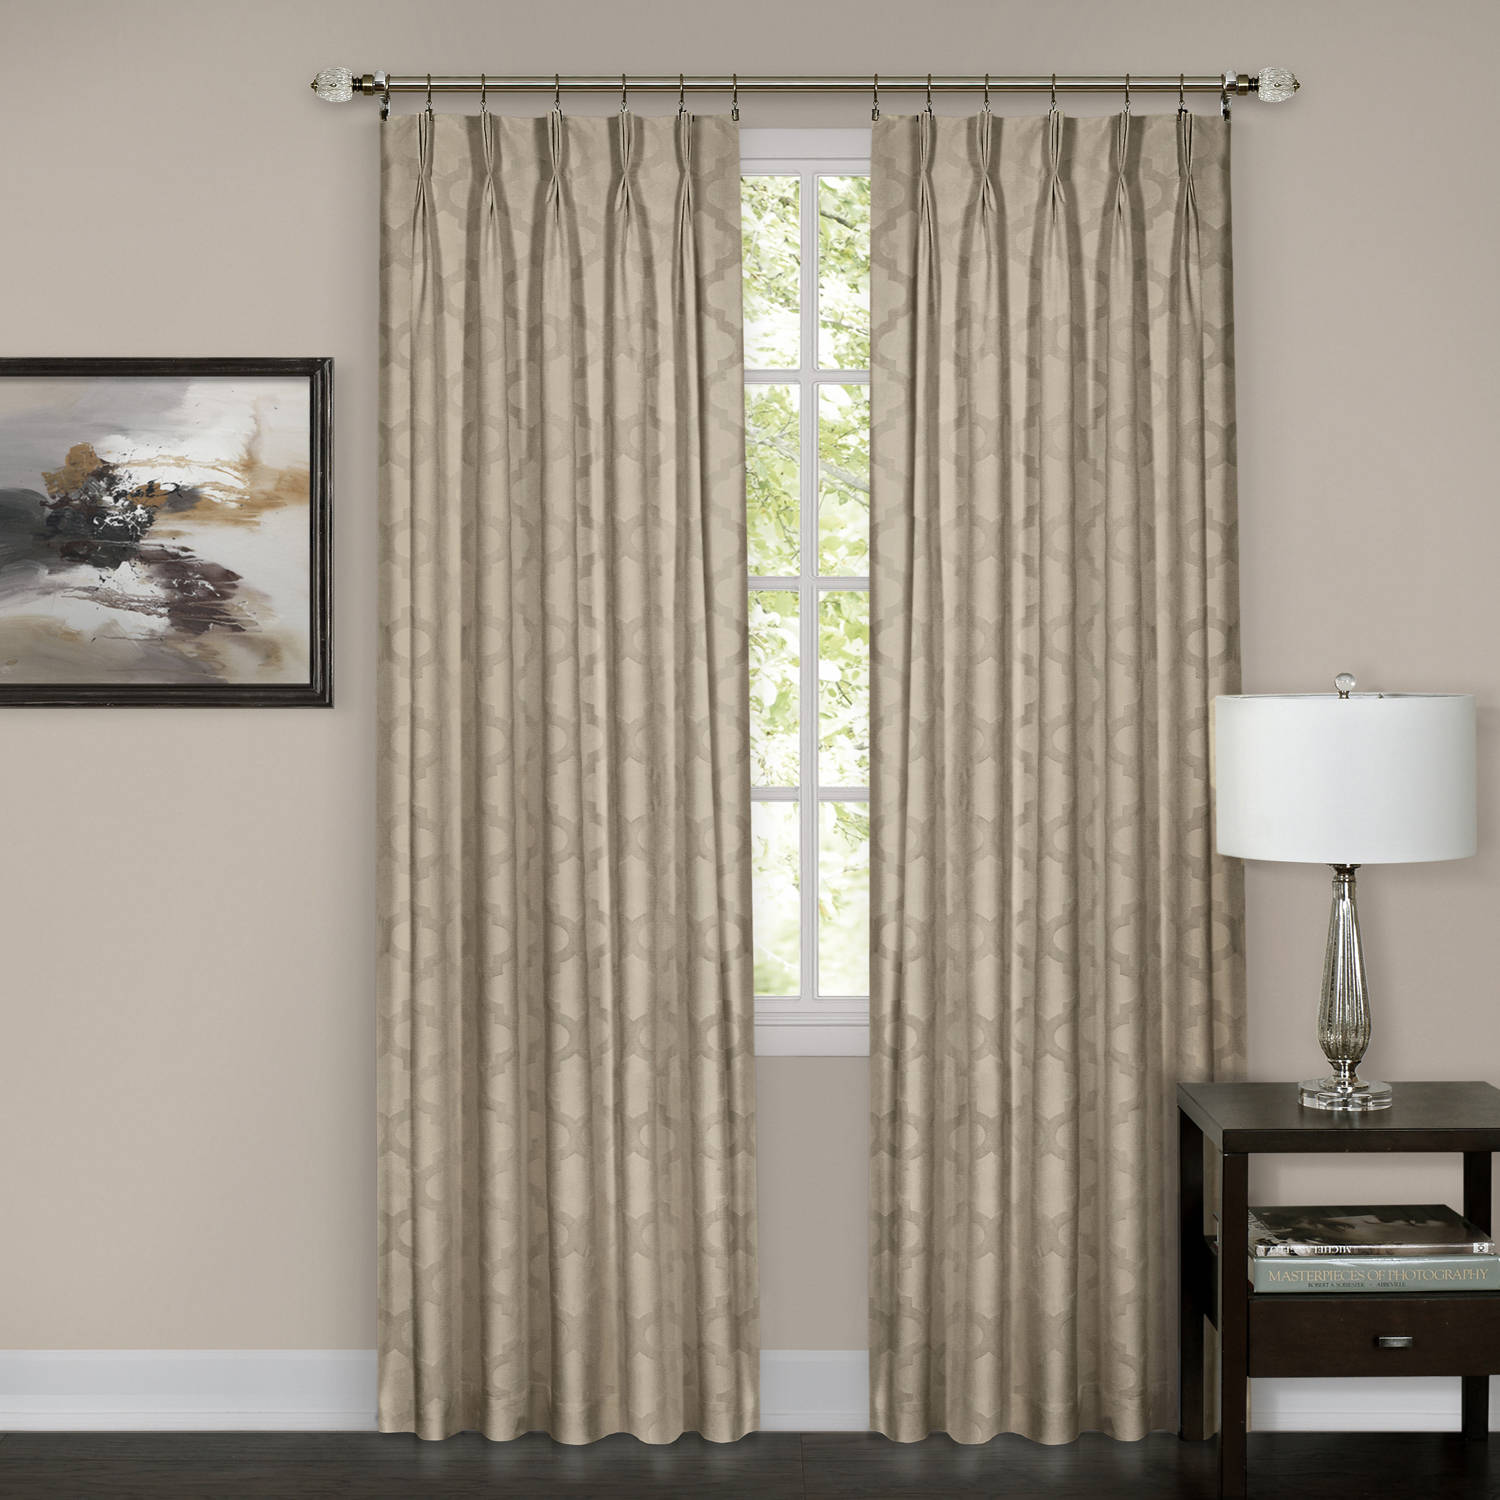 pinch pleated drapery drape darby pair curtains damask p drapes curtain pleat